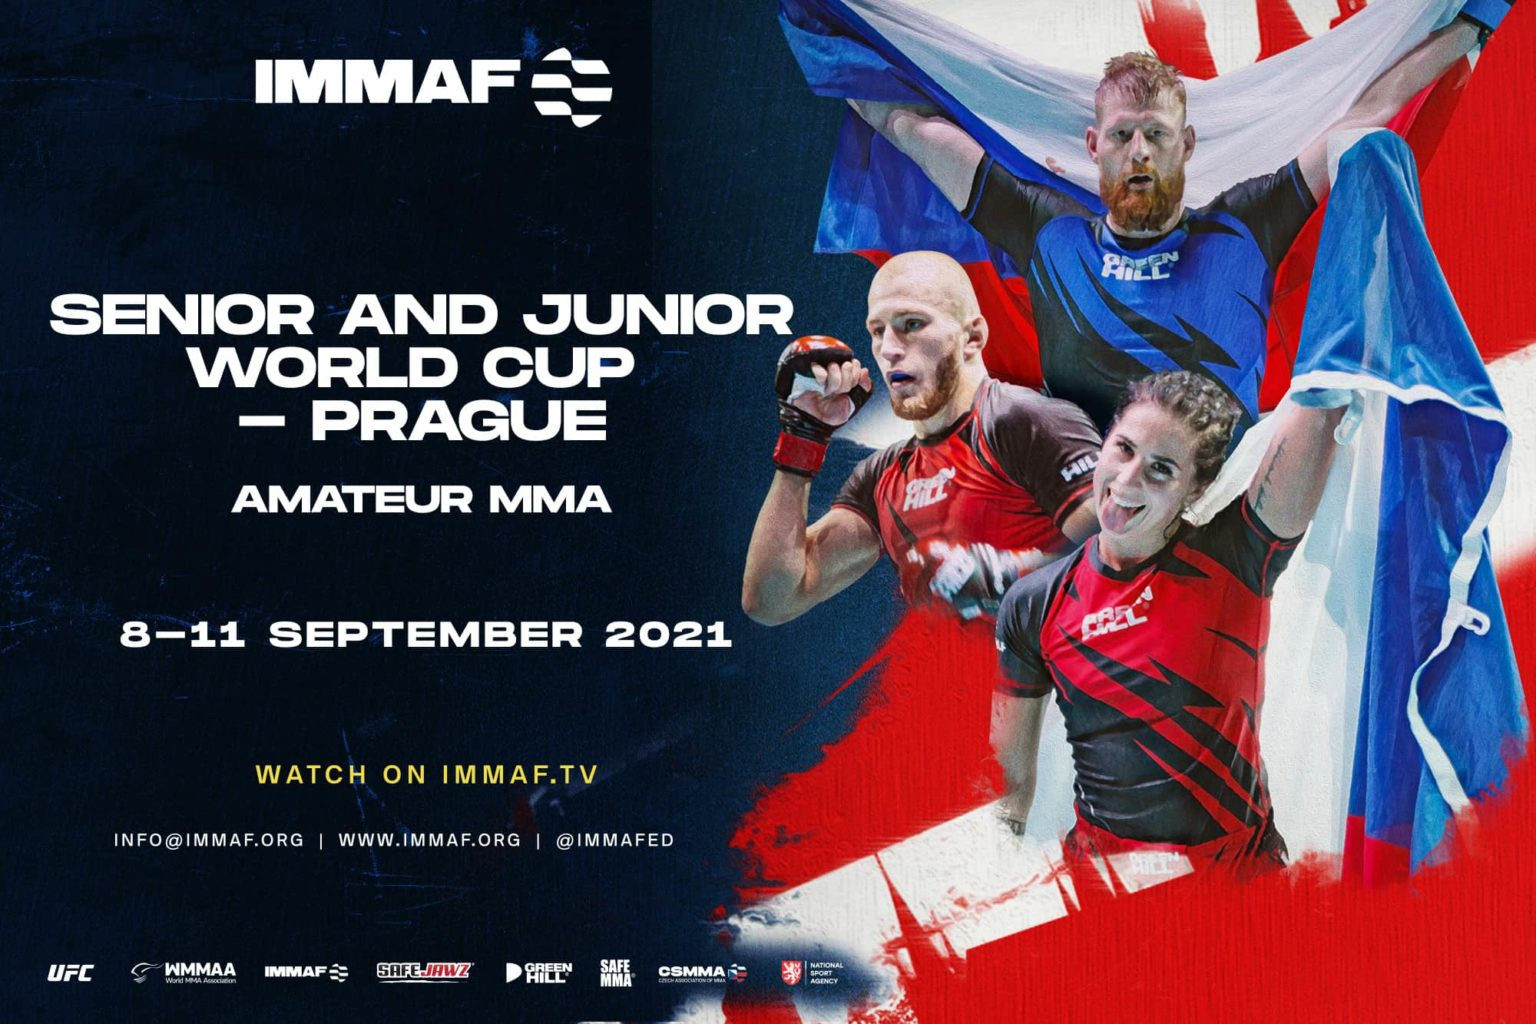 IMMAF launches new World Cup event as MMA returns to play